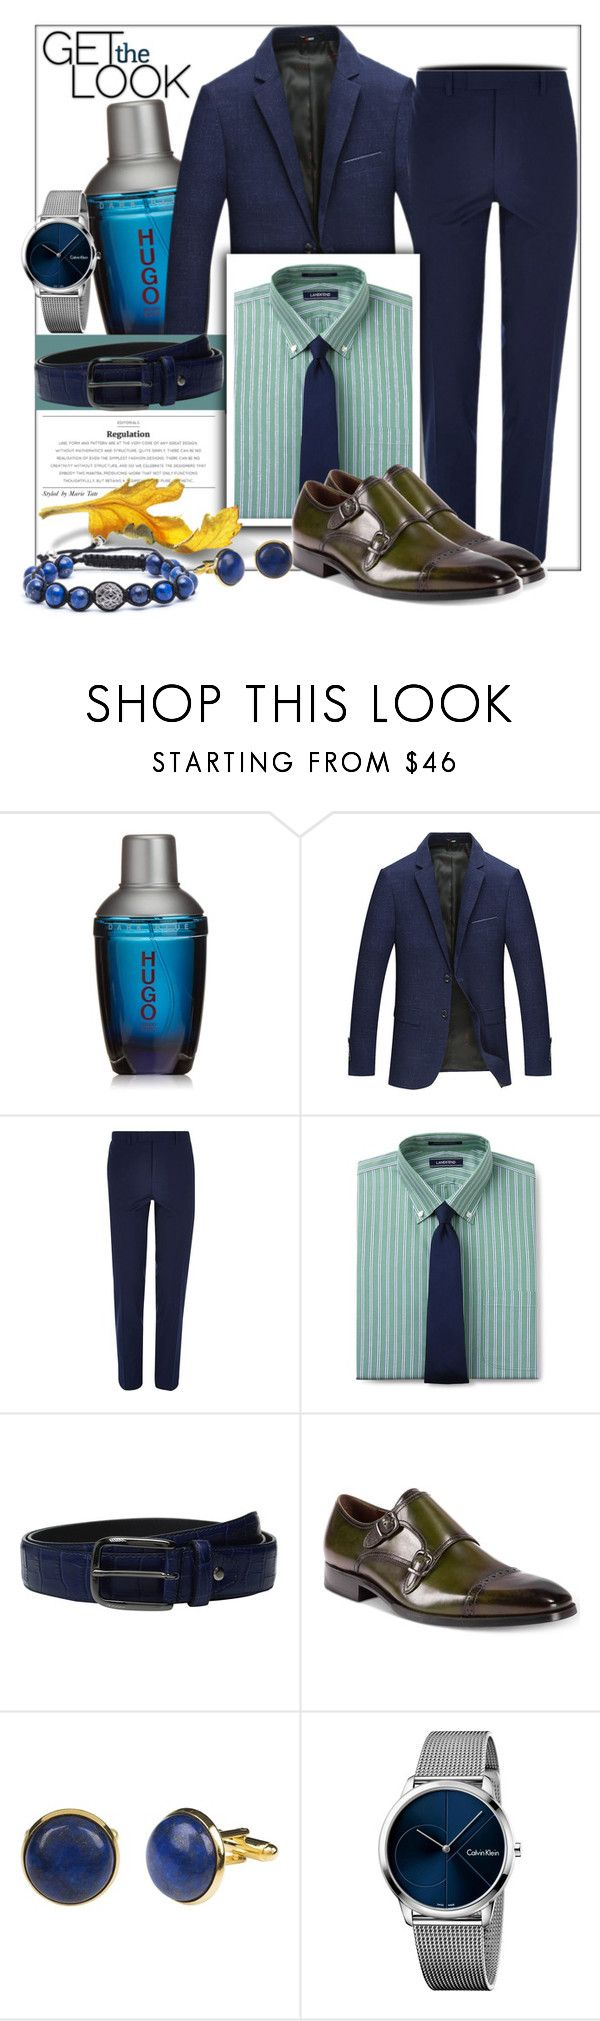 """""""Fall inspired"""" by fashionchronicles365 ❤ liked on Polyvore featuring HUGO, River Island, Lands' End, Bugatchi, Tallia Orange, Lazuli, Calvin Klein, Jared Lang, men's fashion and menswear"""